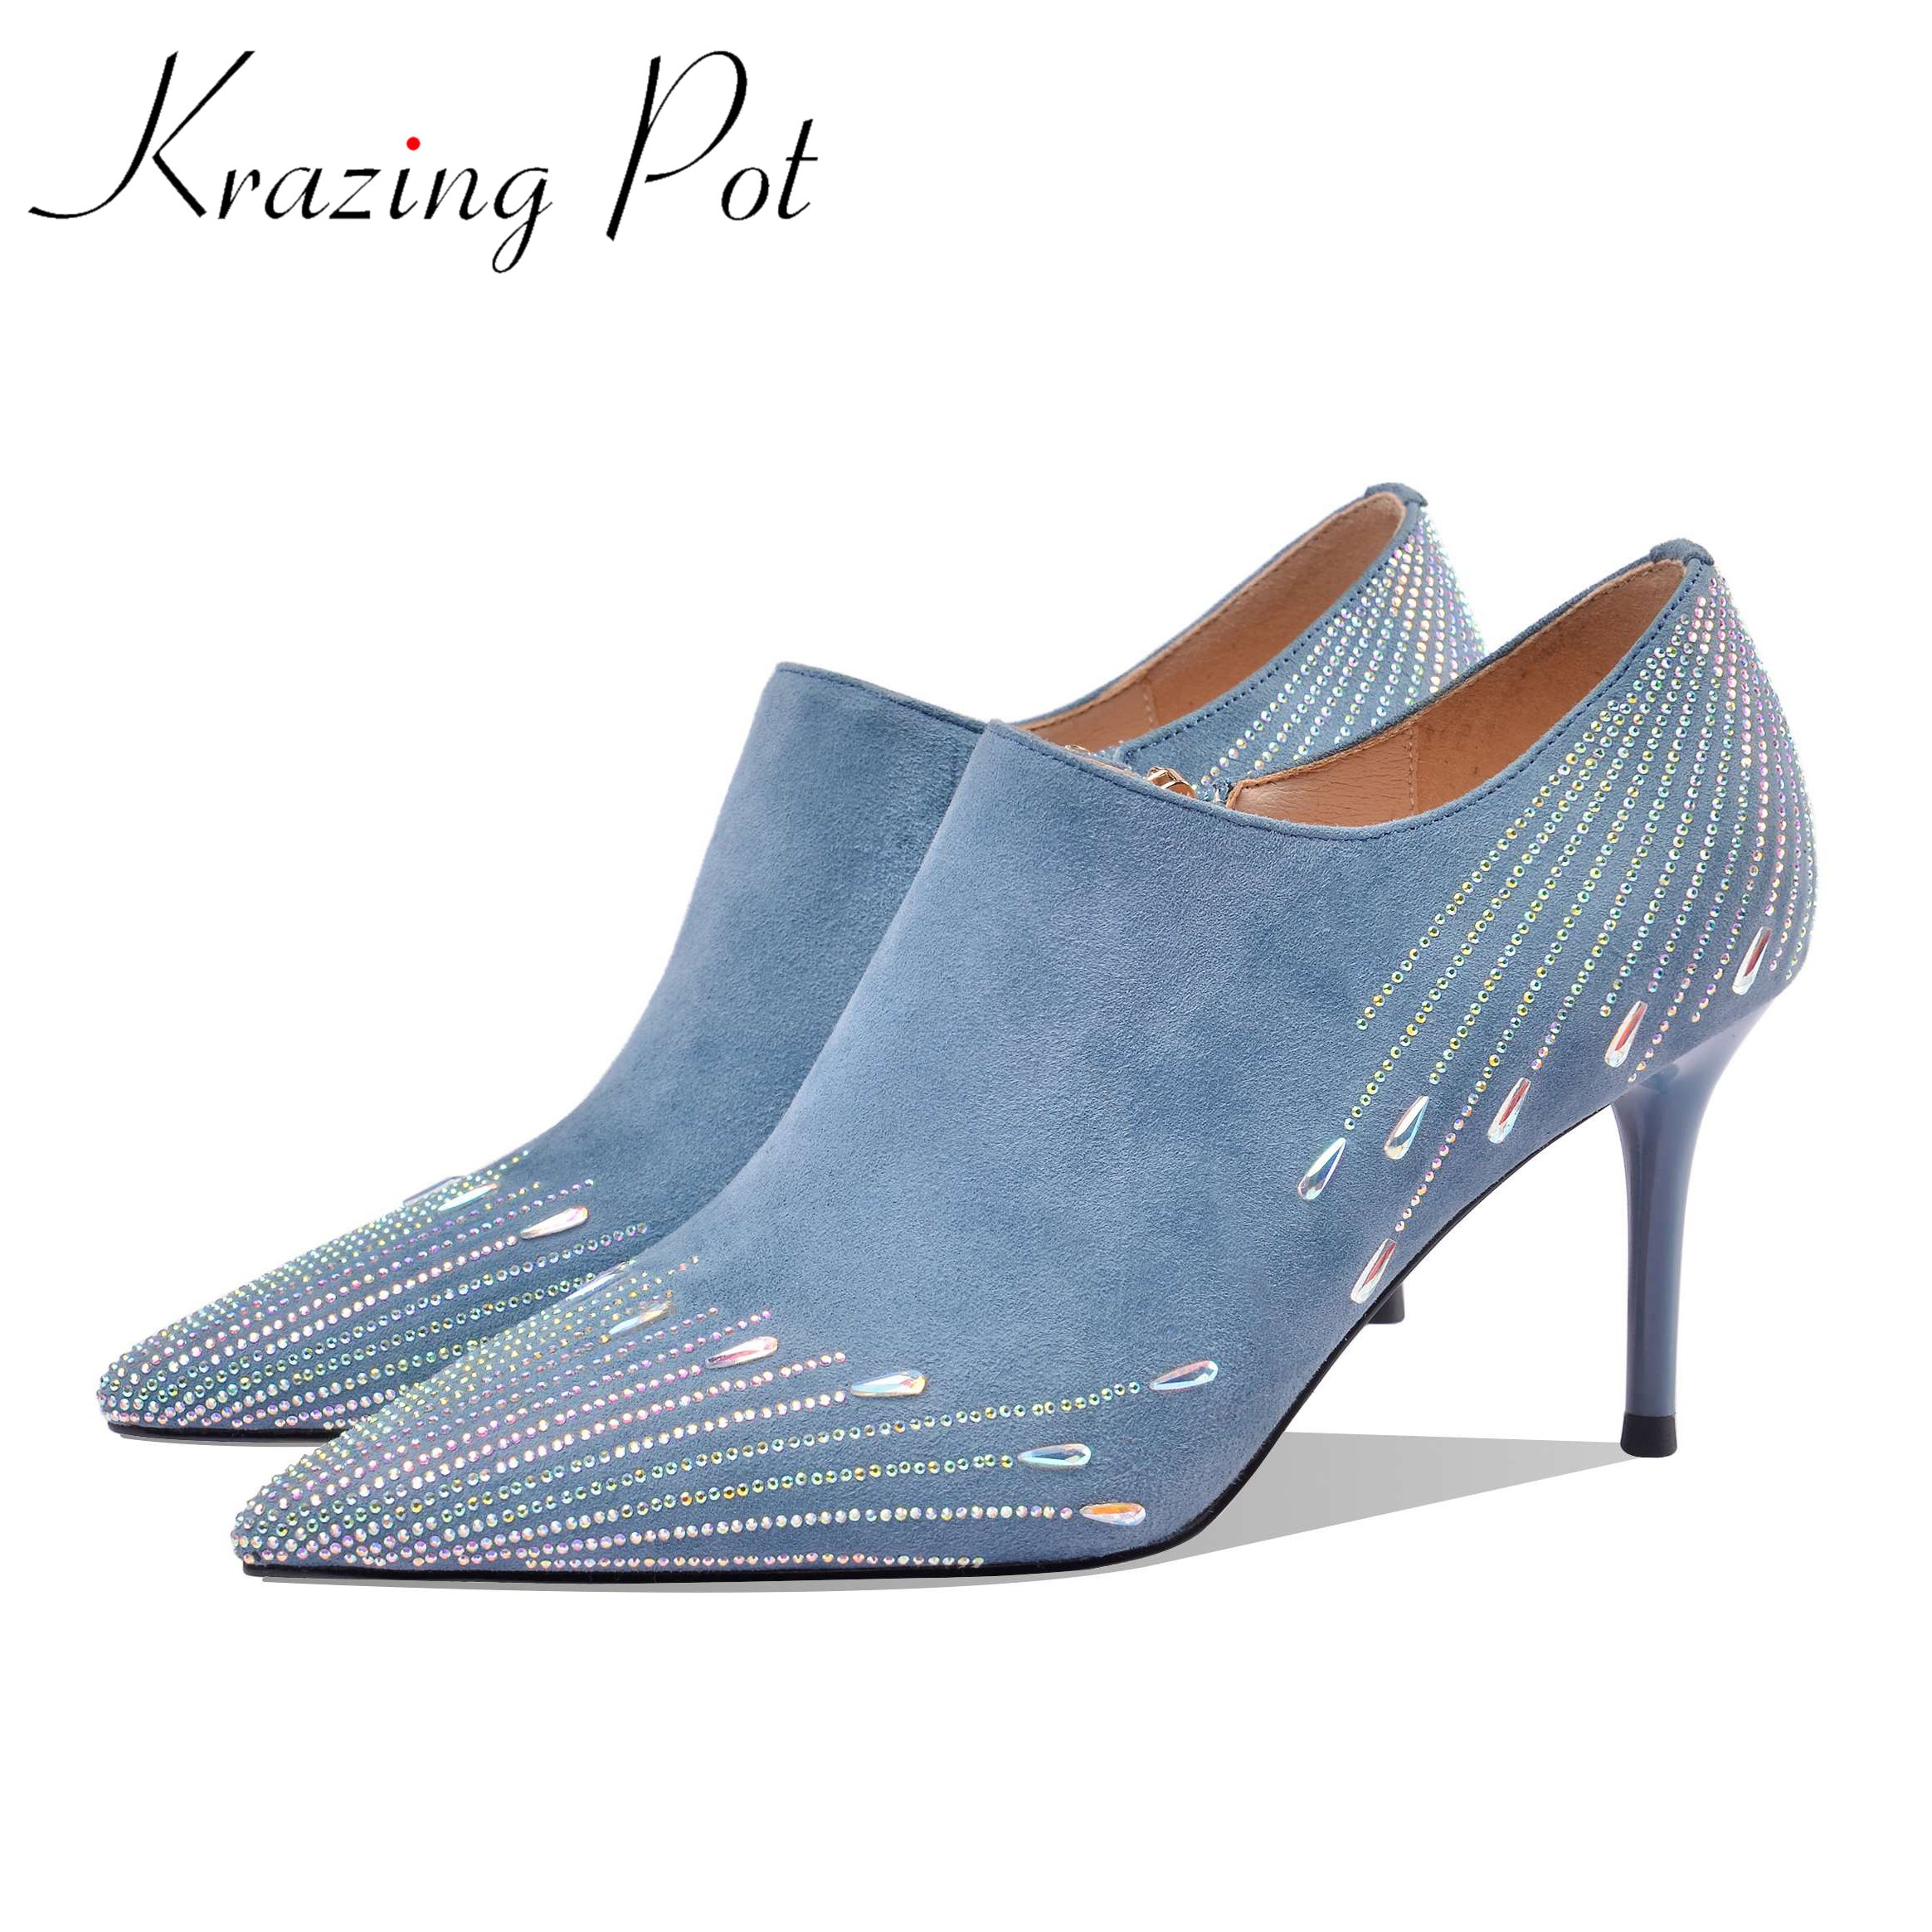 Krazing pot 2020 hot saling kid suede pointed toe high thin heels rhinestone gentlewomen party deep mouth early spring pumps L03